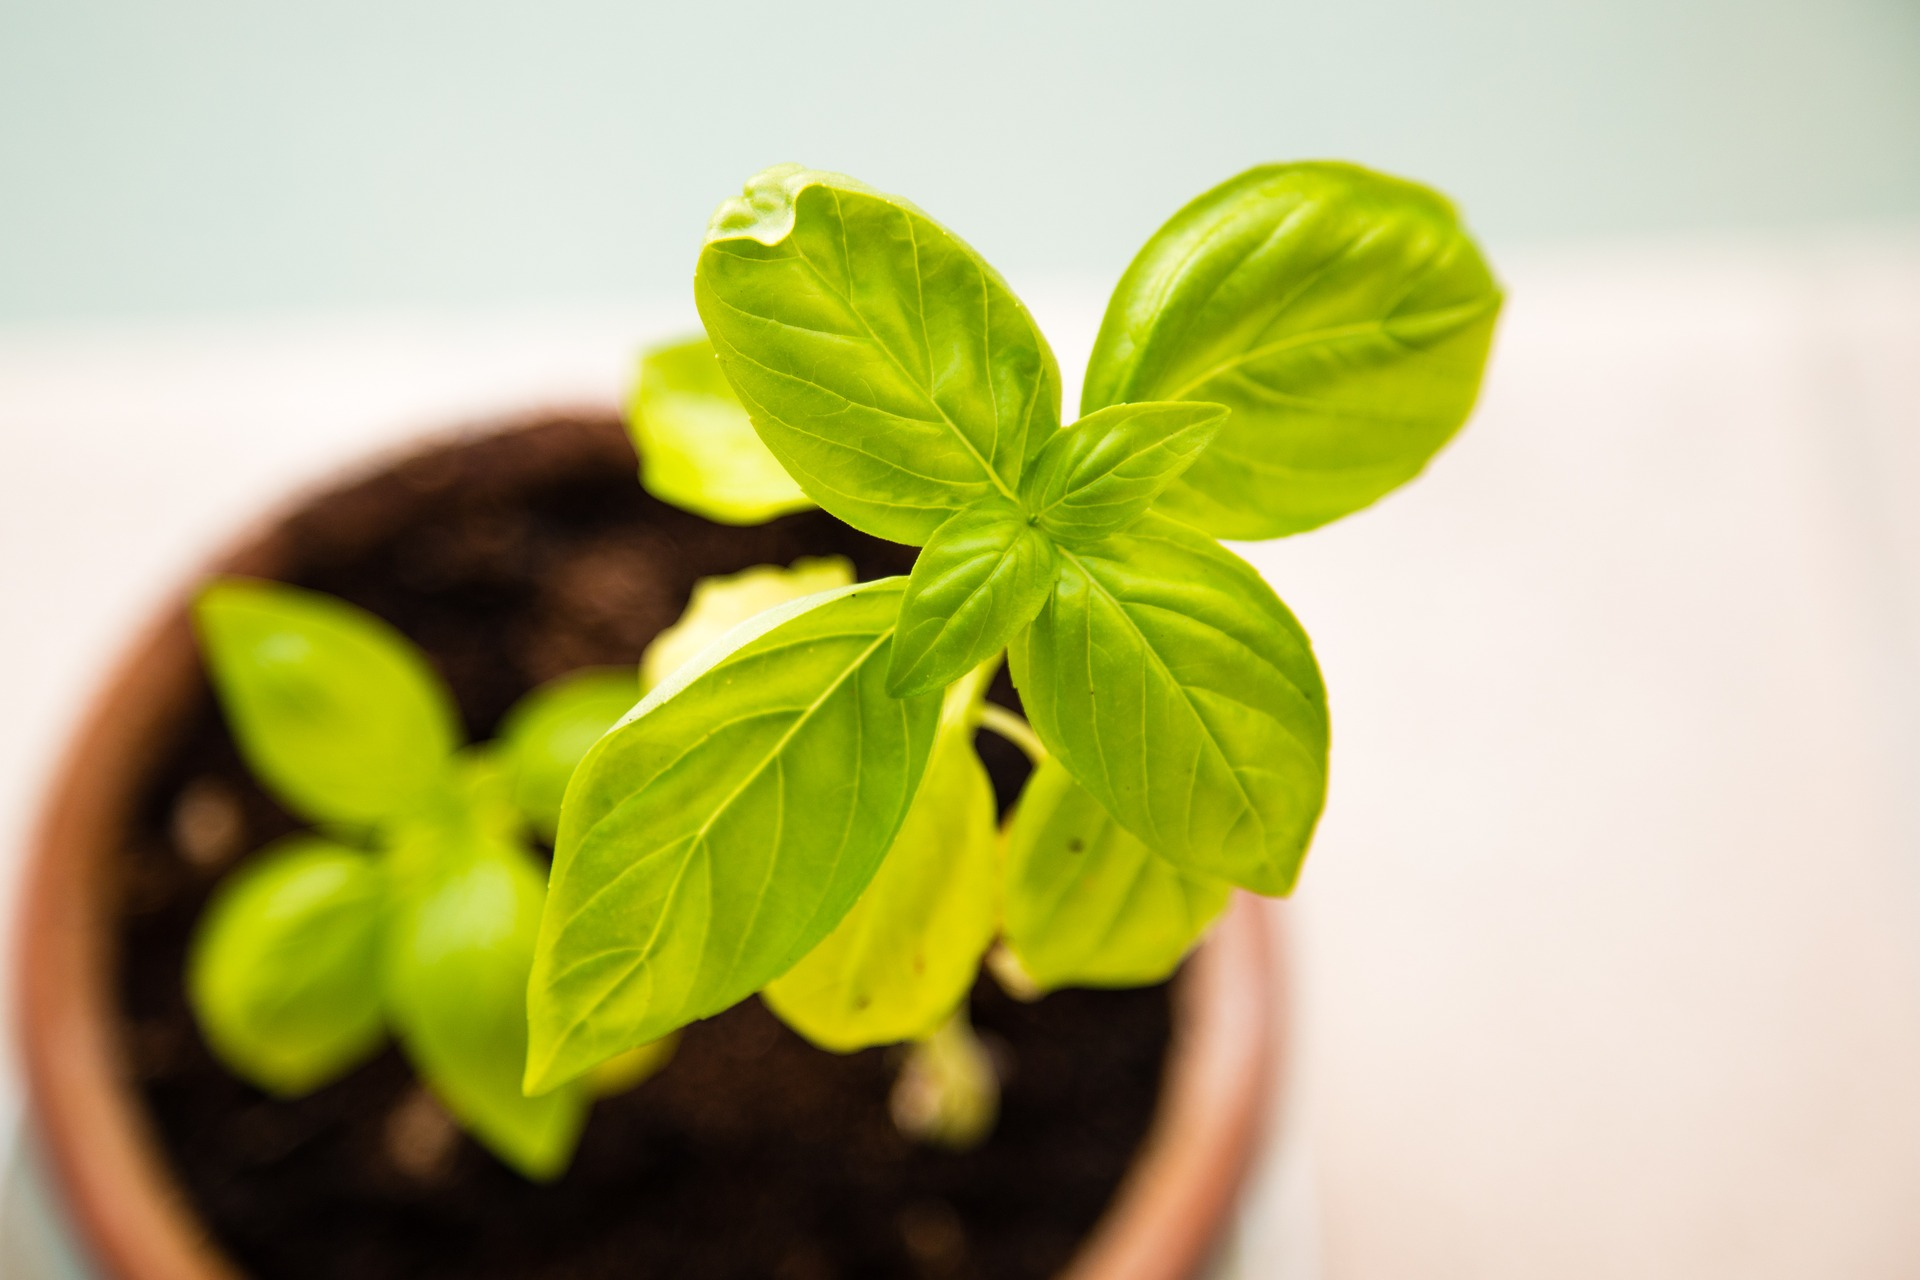 11 secrets for growing better basil you didn't know...until now